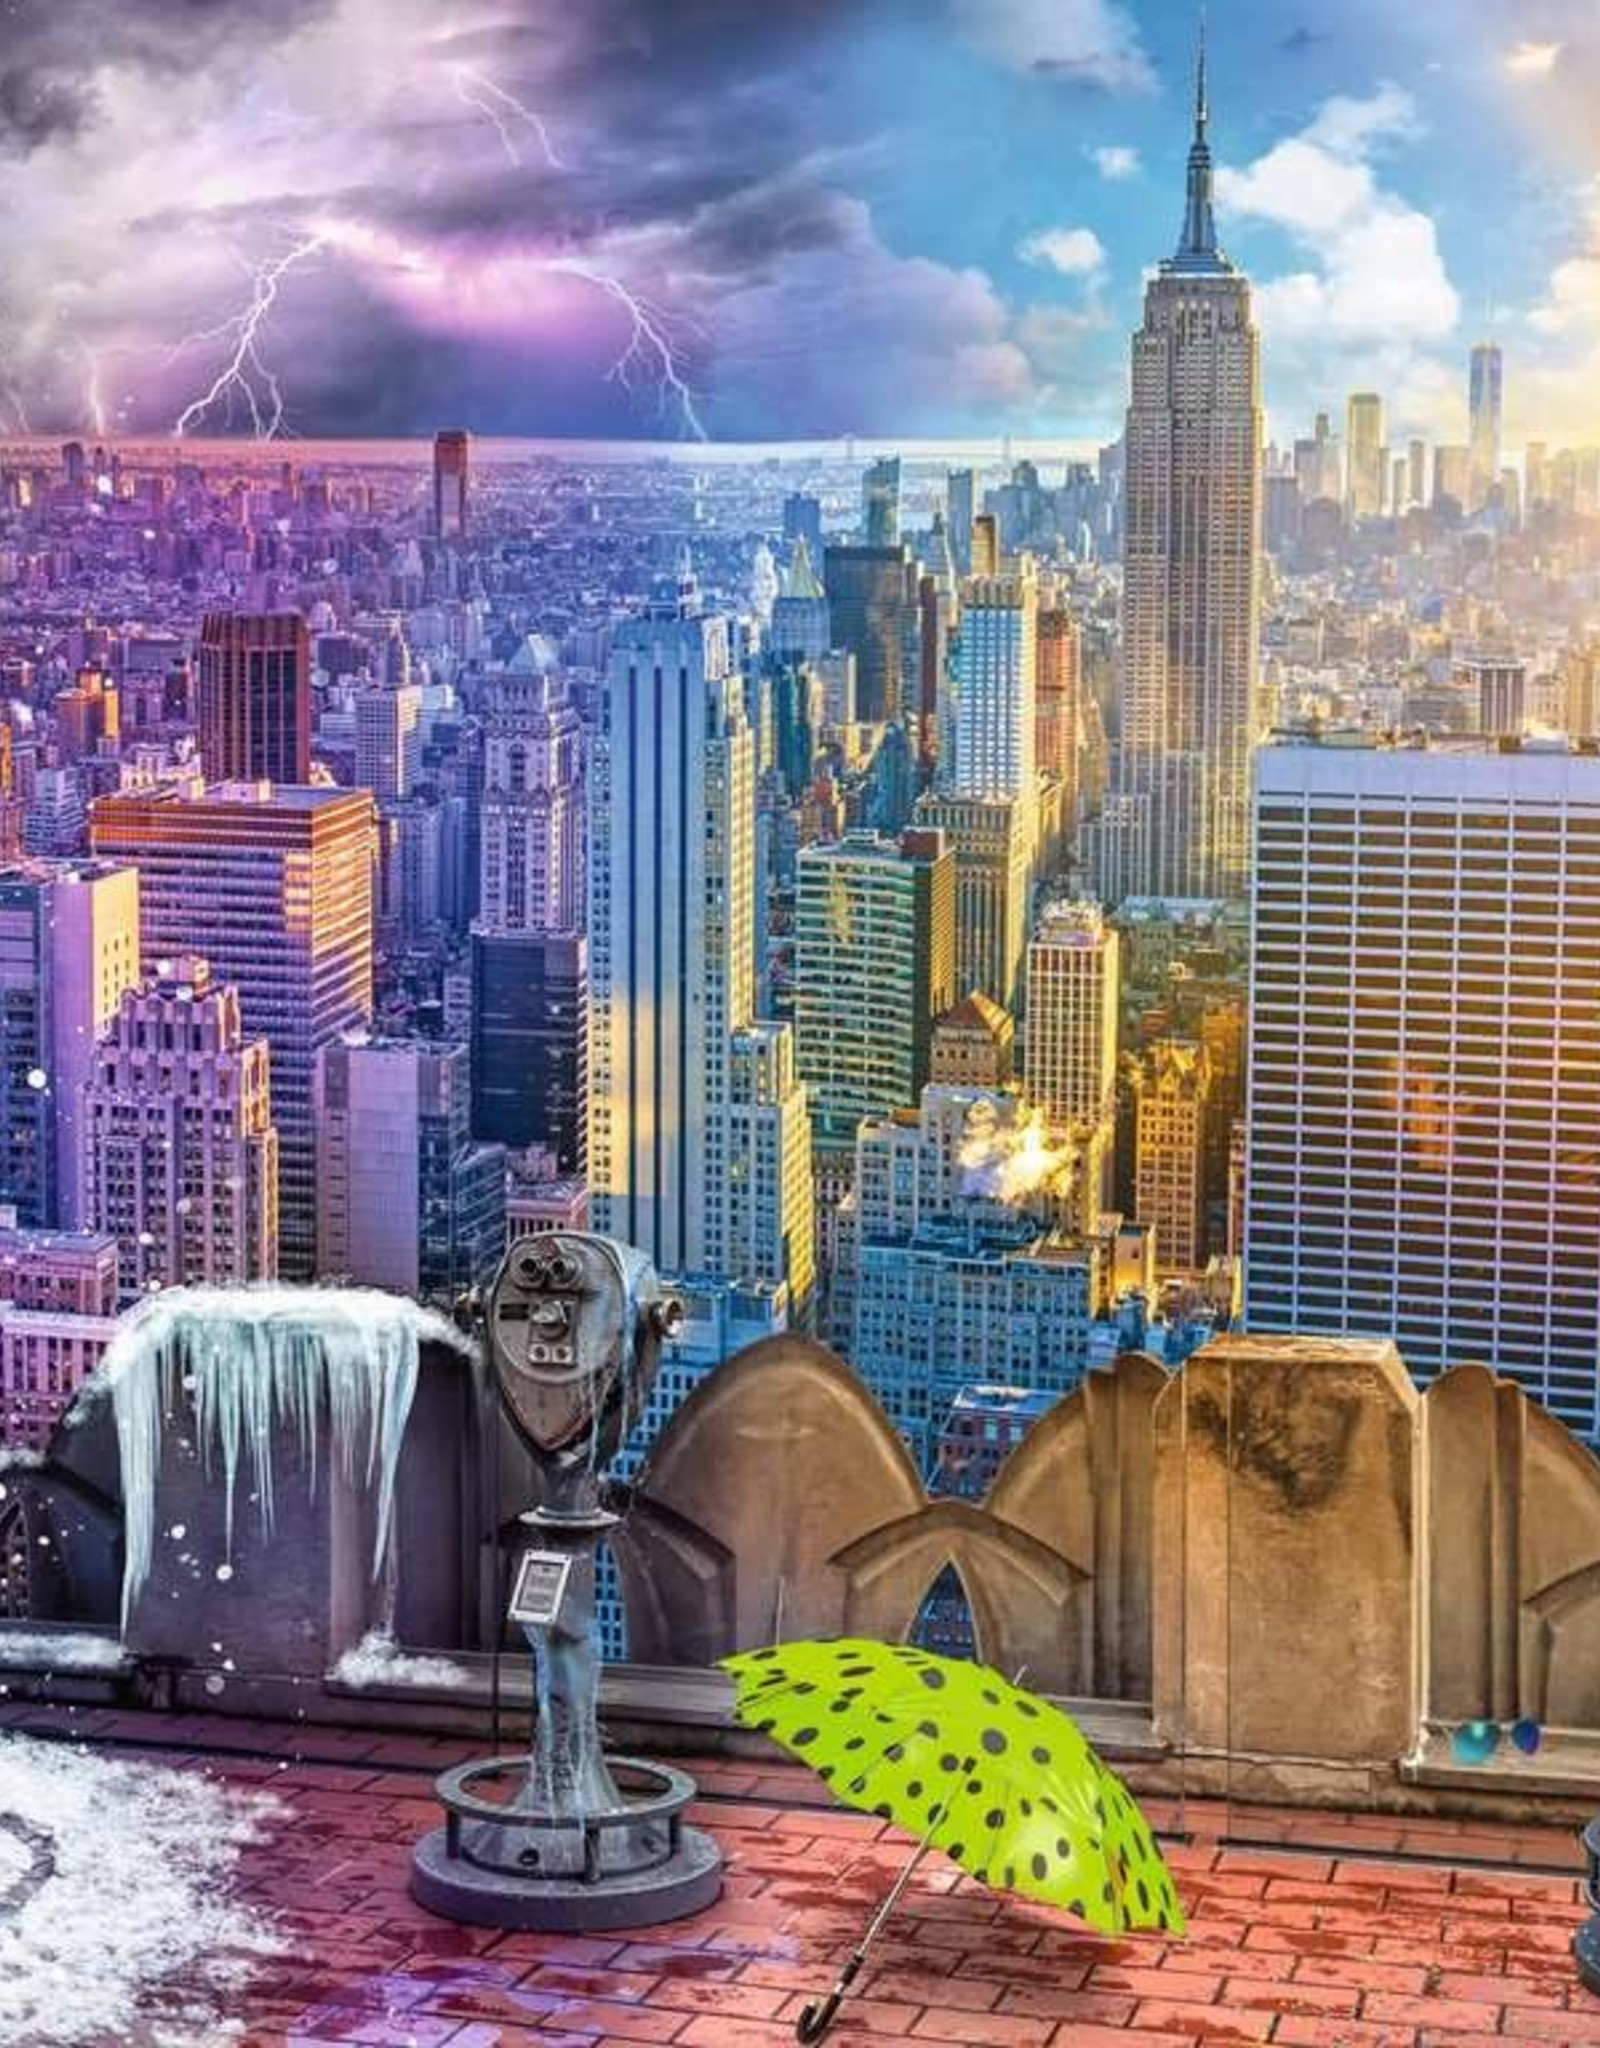 Ravensburger Day and Night NYC Skyline Puzzle 1500 PC